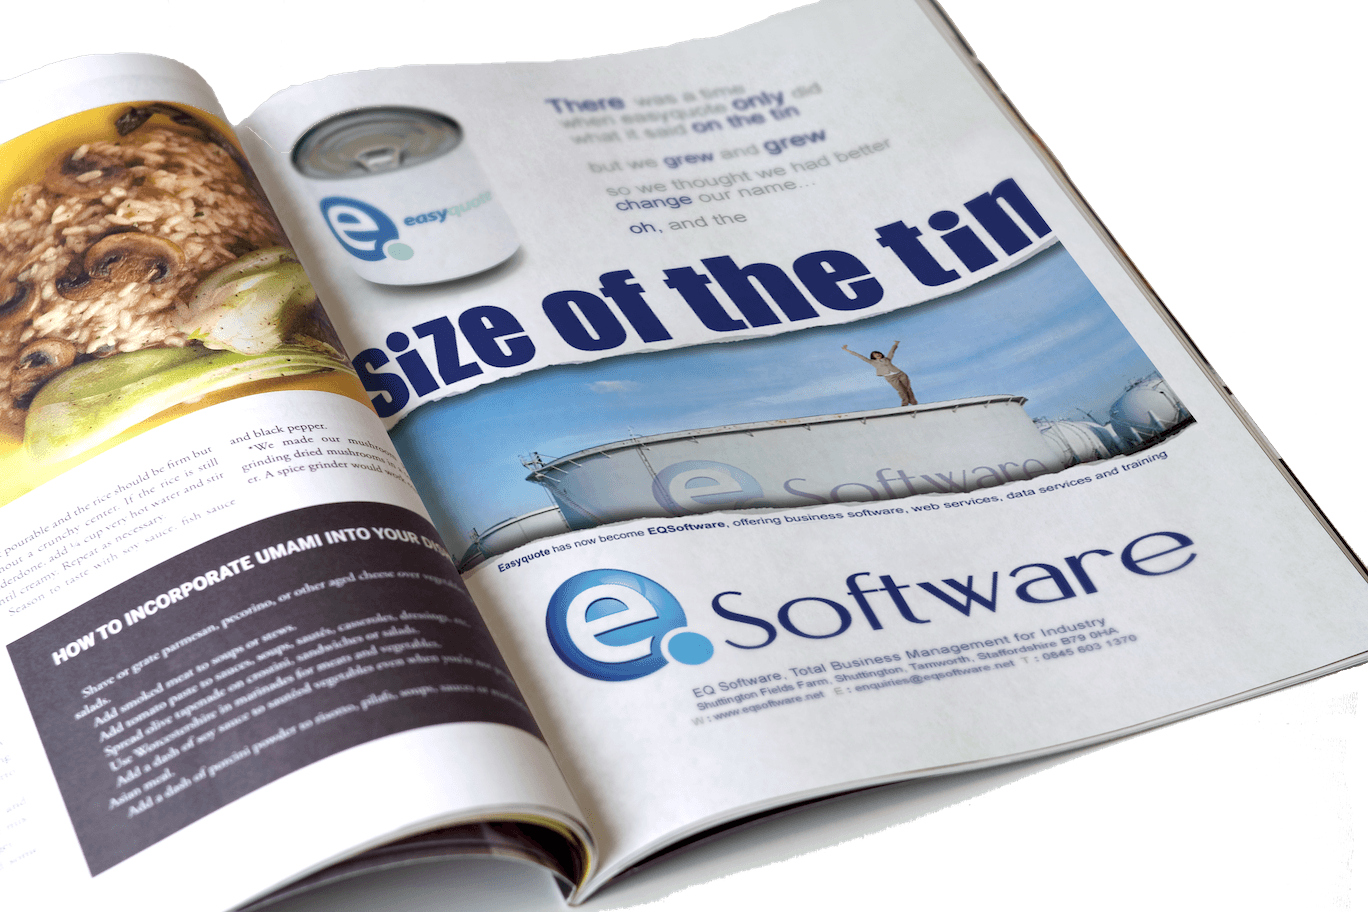 An image showing one of the A4 full page adverts designed for E Q Software